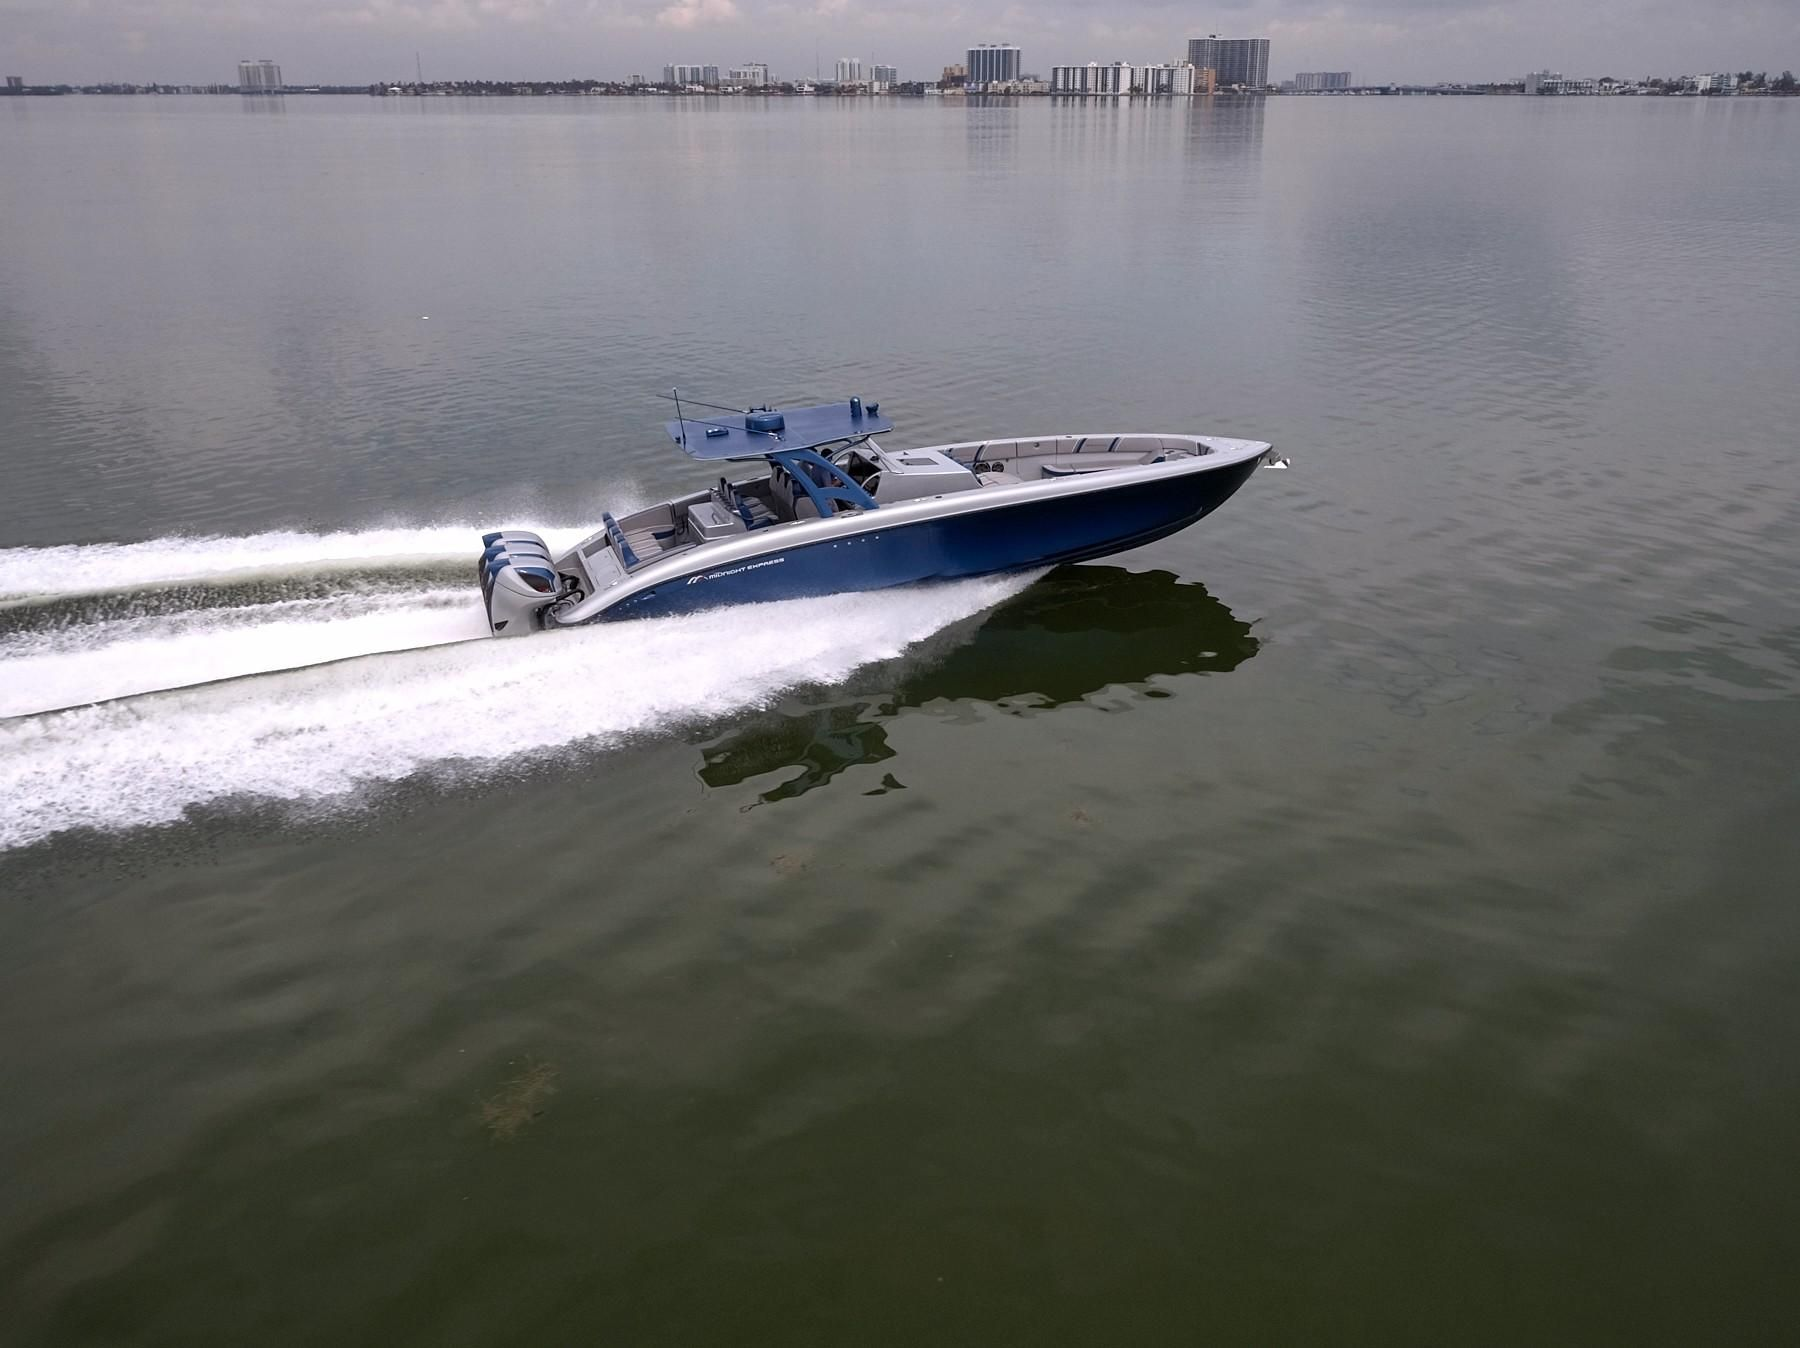 2017 Midnight Express 43 Open Power Boat For Sale Www Yachtworld Com